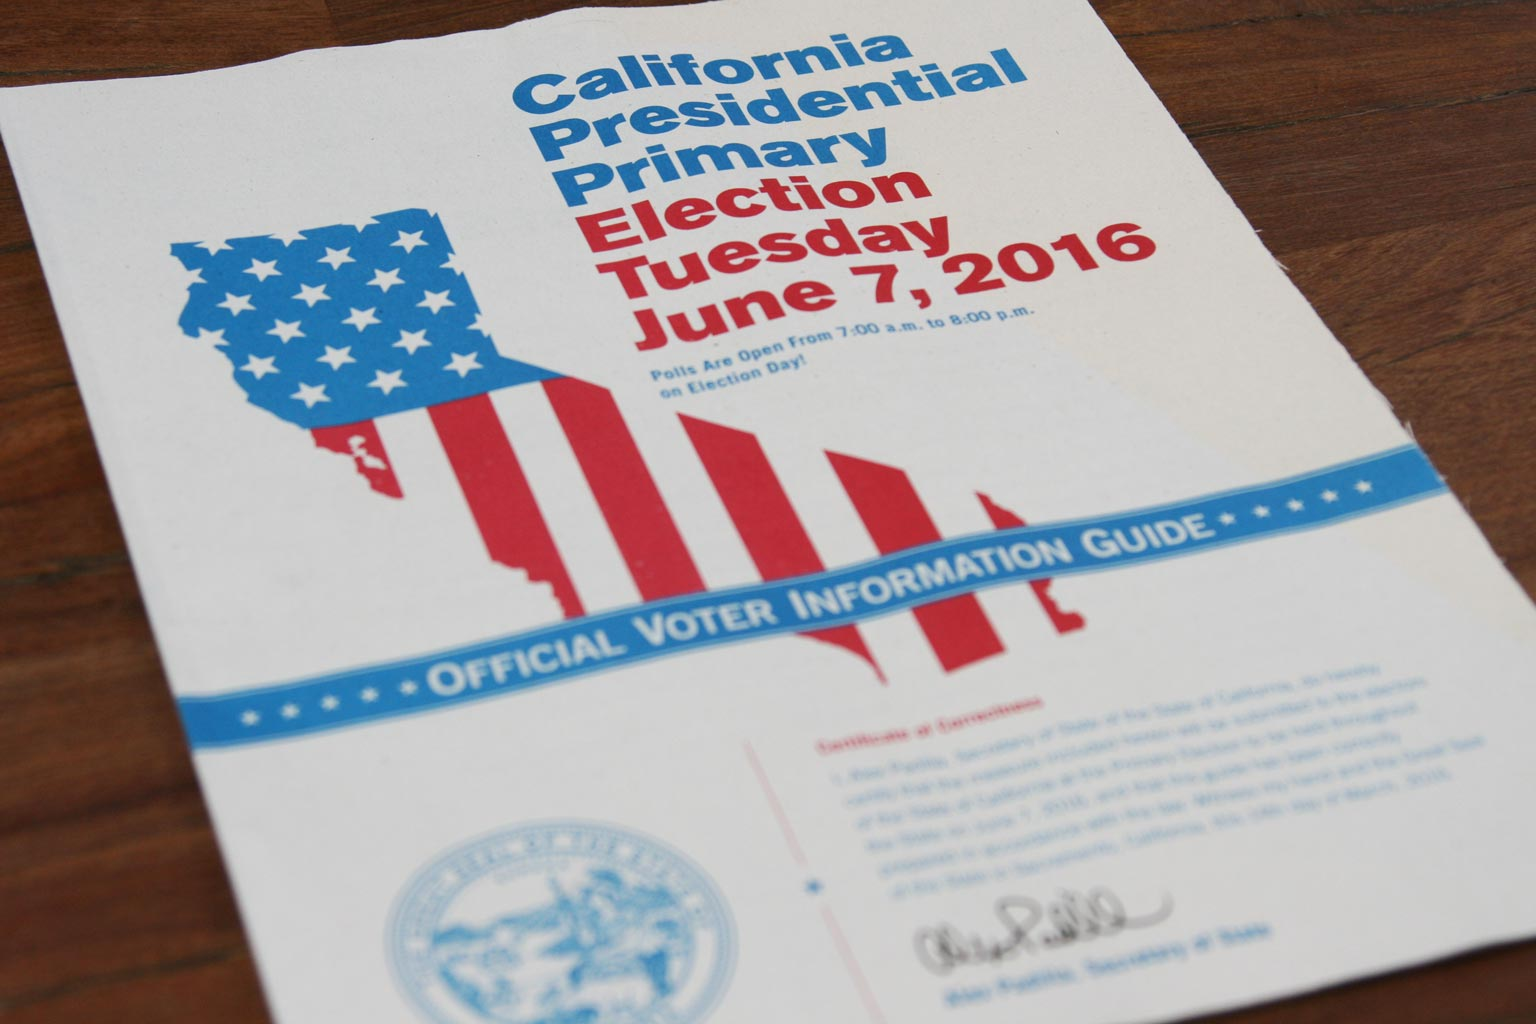 california-presidential-primary-election